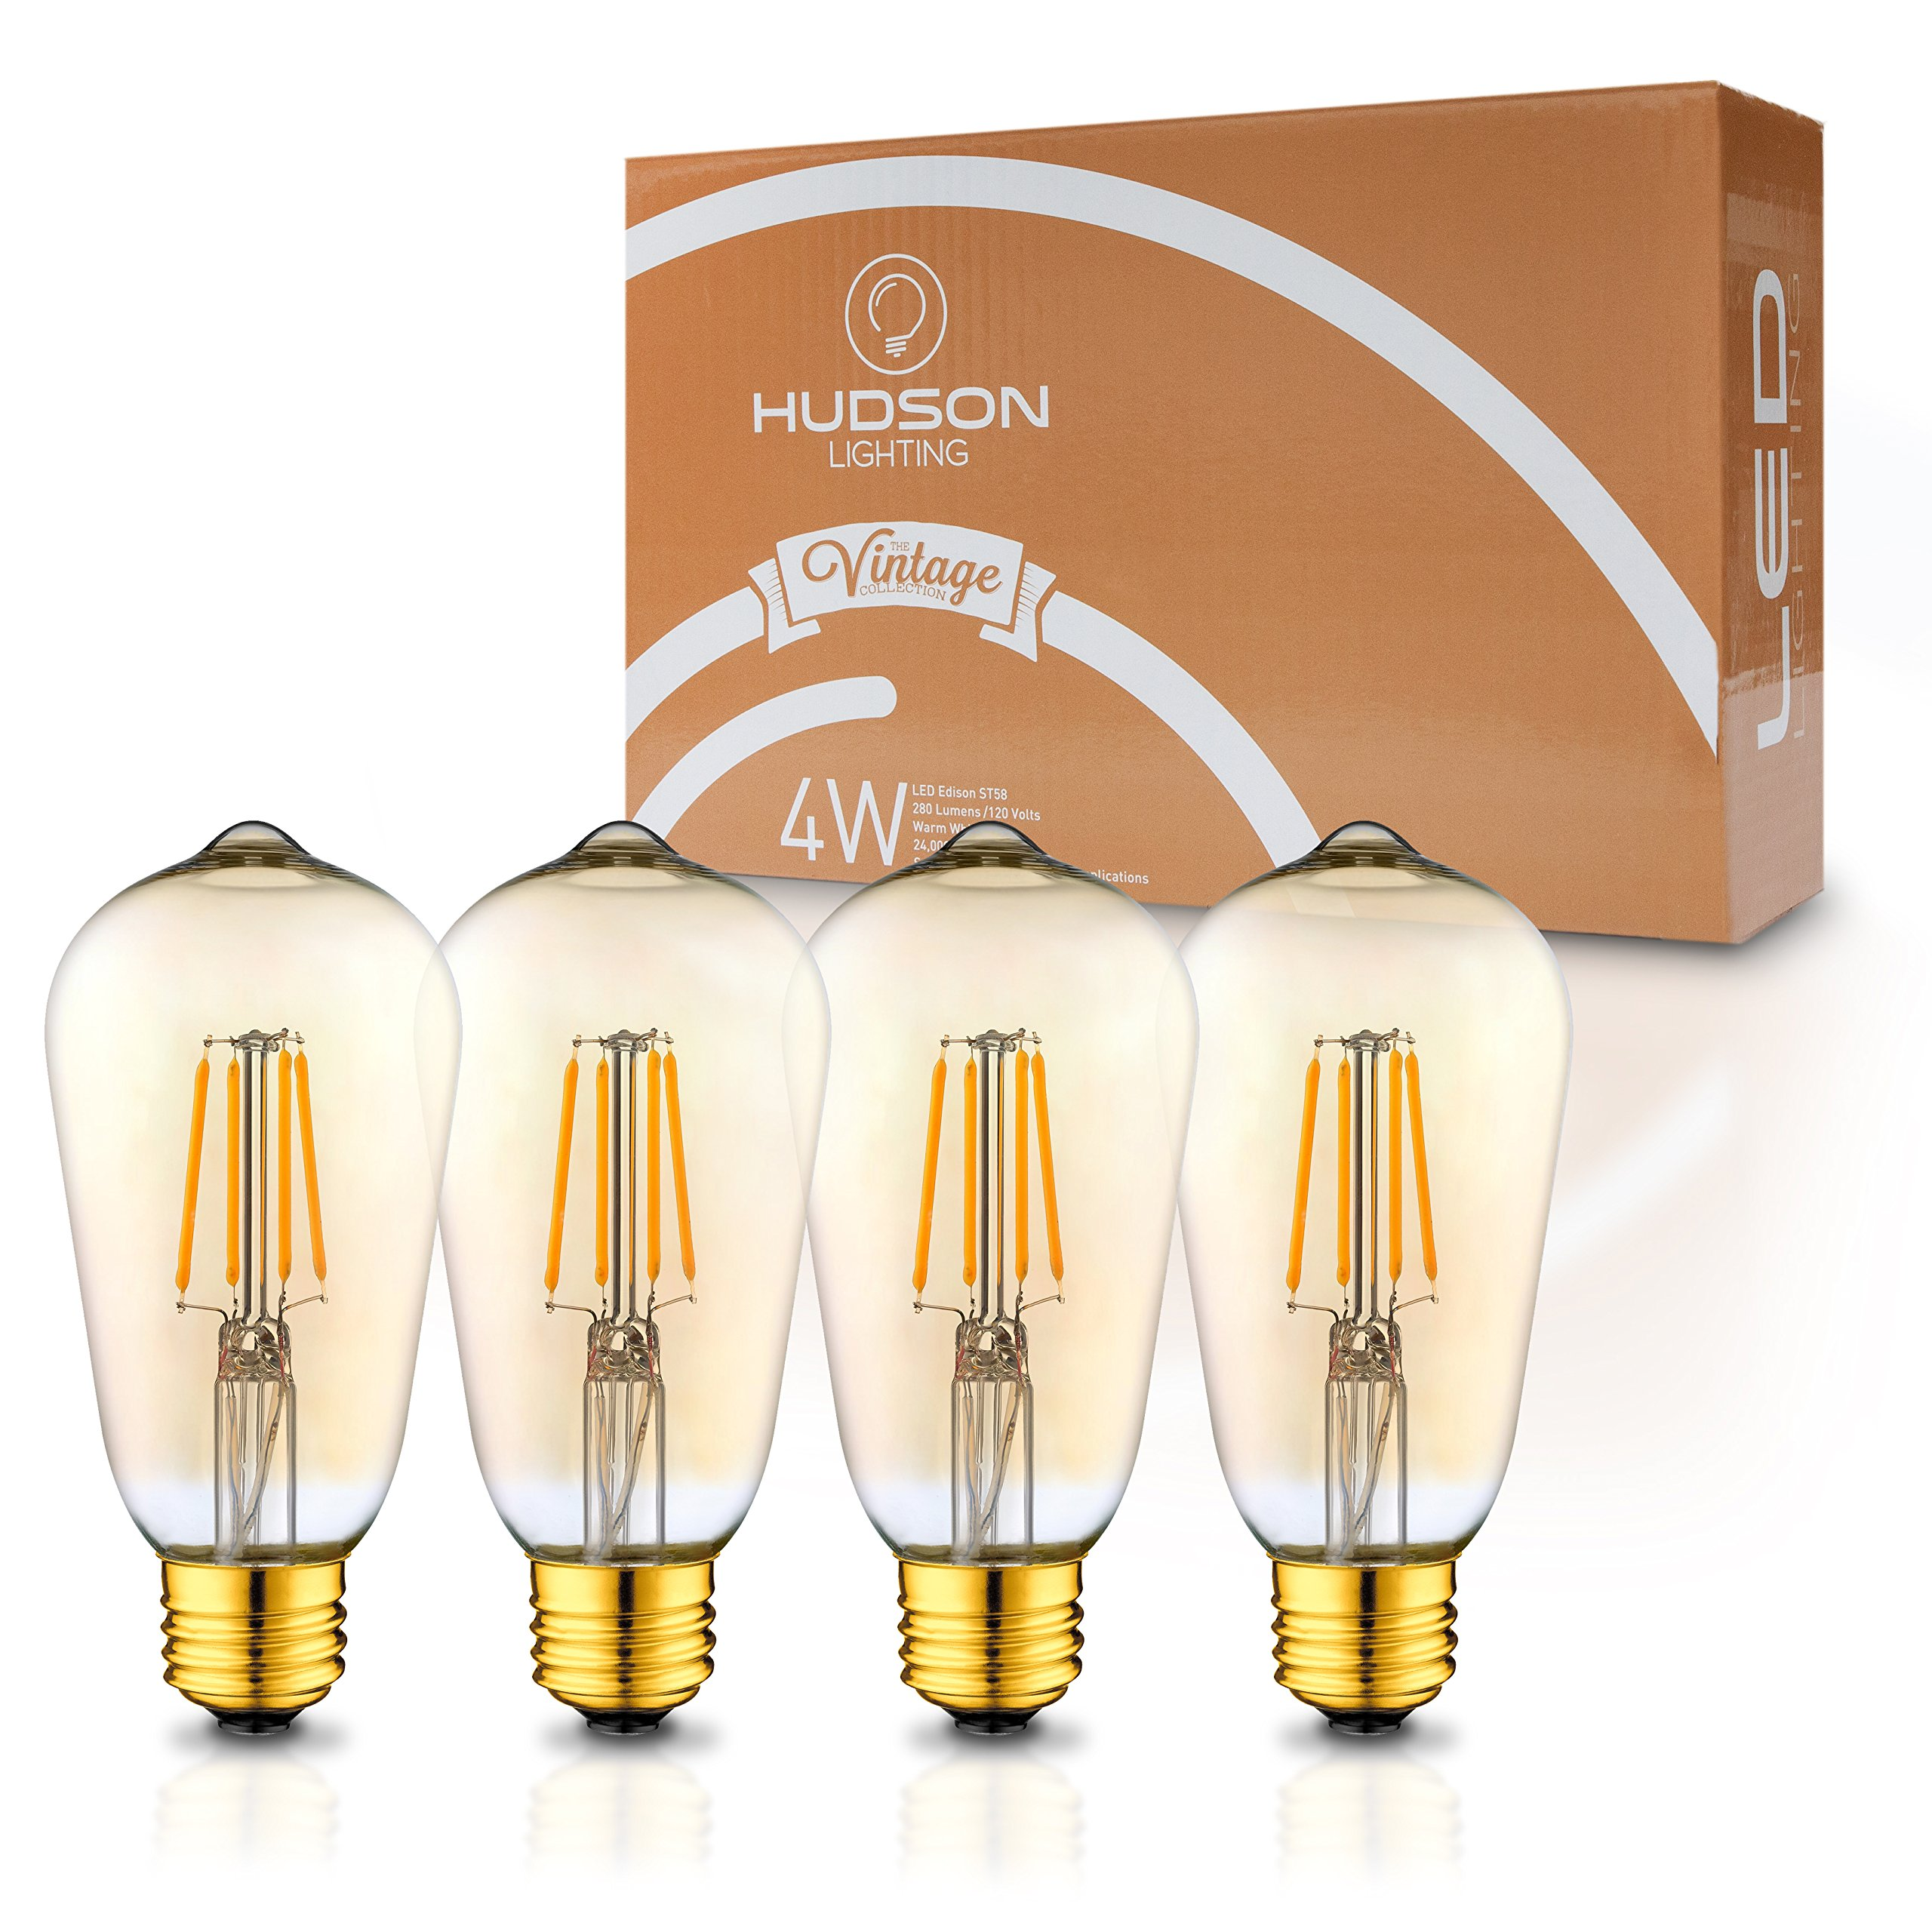 LED Dimmable Vintage Edison Led Bulbs 4W Antique Style Edison Light Bulbs, 2200K Warm White (Amber Gold Glass), Dimmable Vintage Light Bulb - ST58 - E26 Base - Edison LED Bulb - 2 Year Warranty by HUDSON LIGHTING